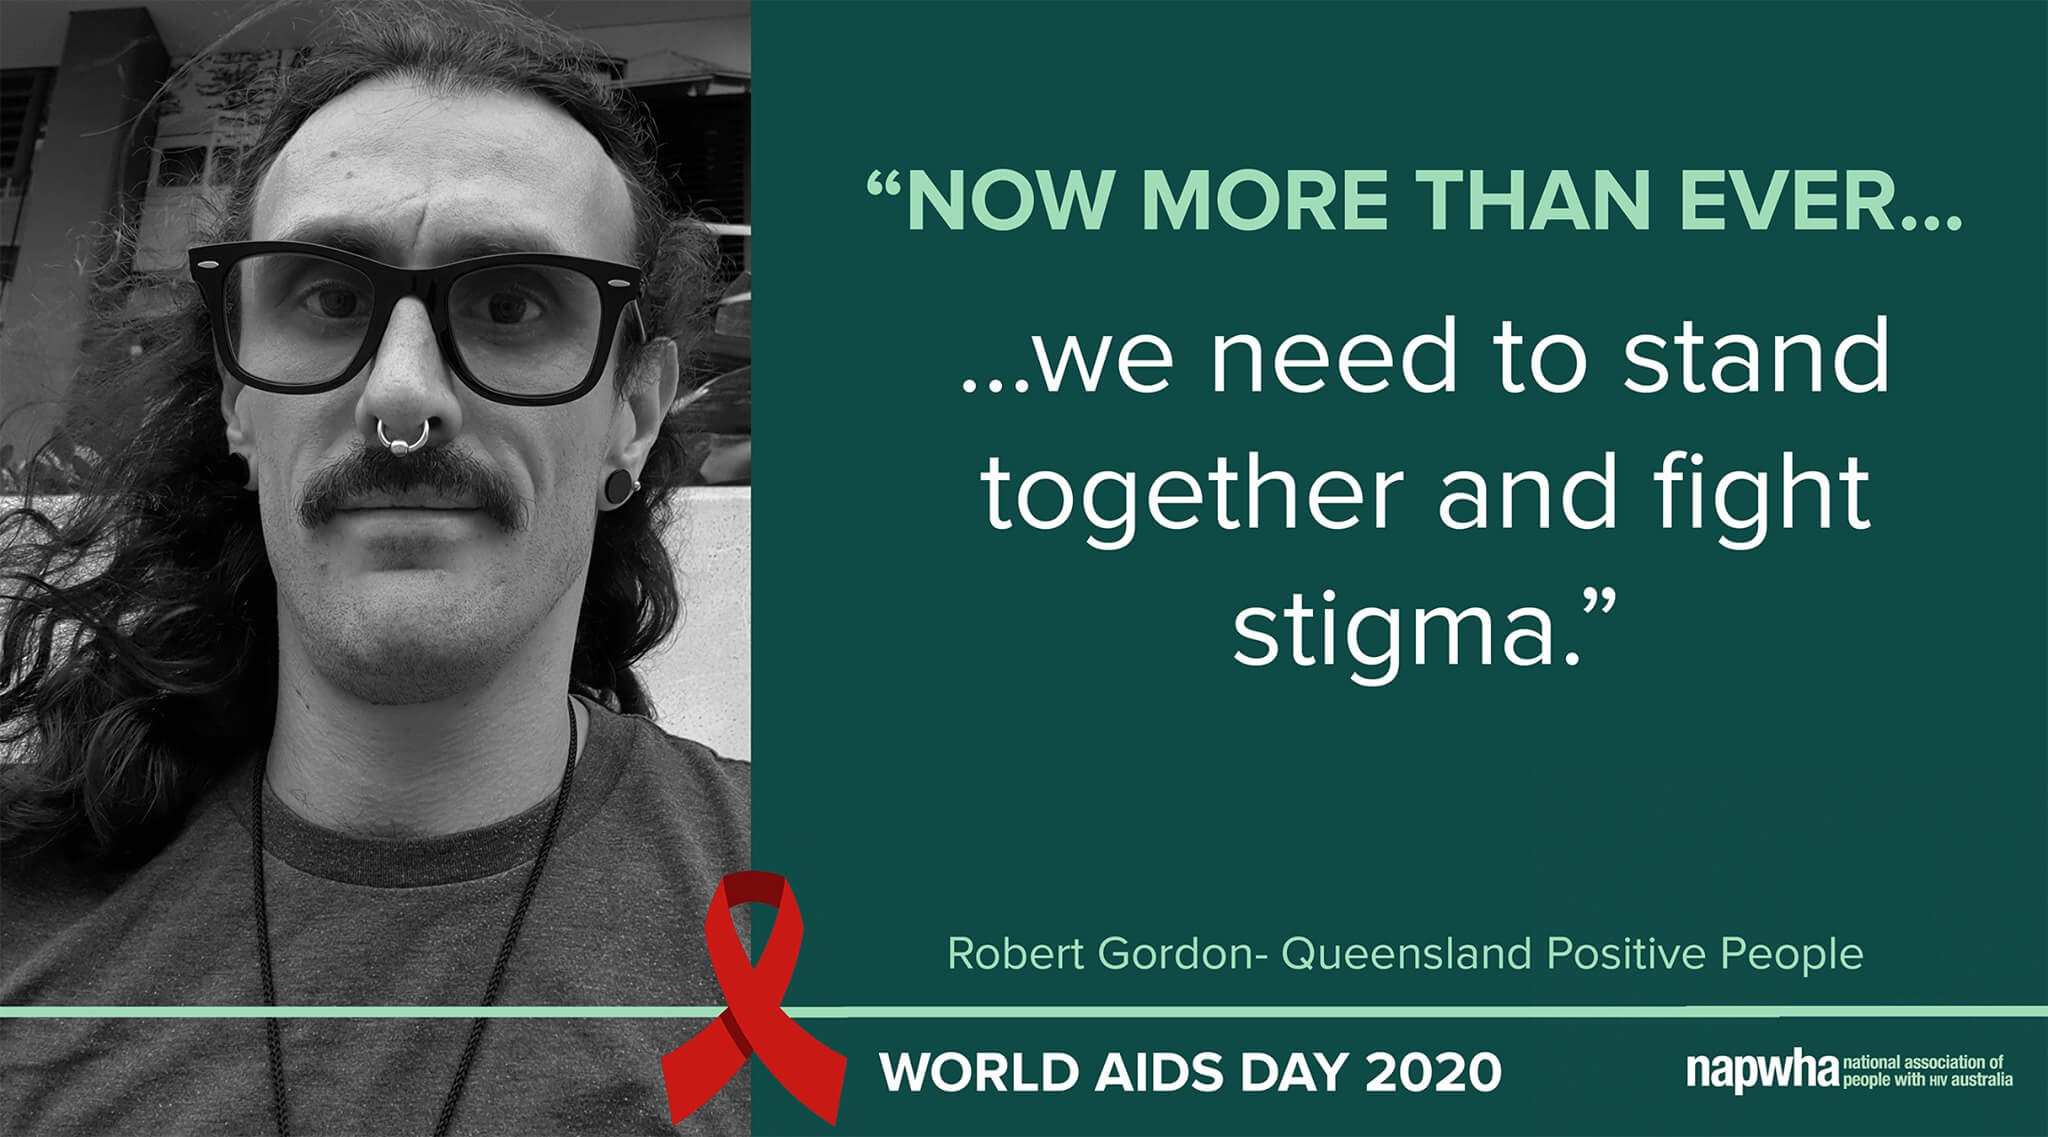 Robert Gordon of Queensland Positive People provides a World AIDS Day 2020 message